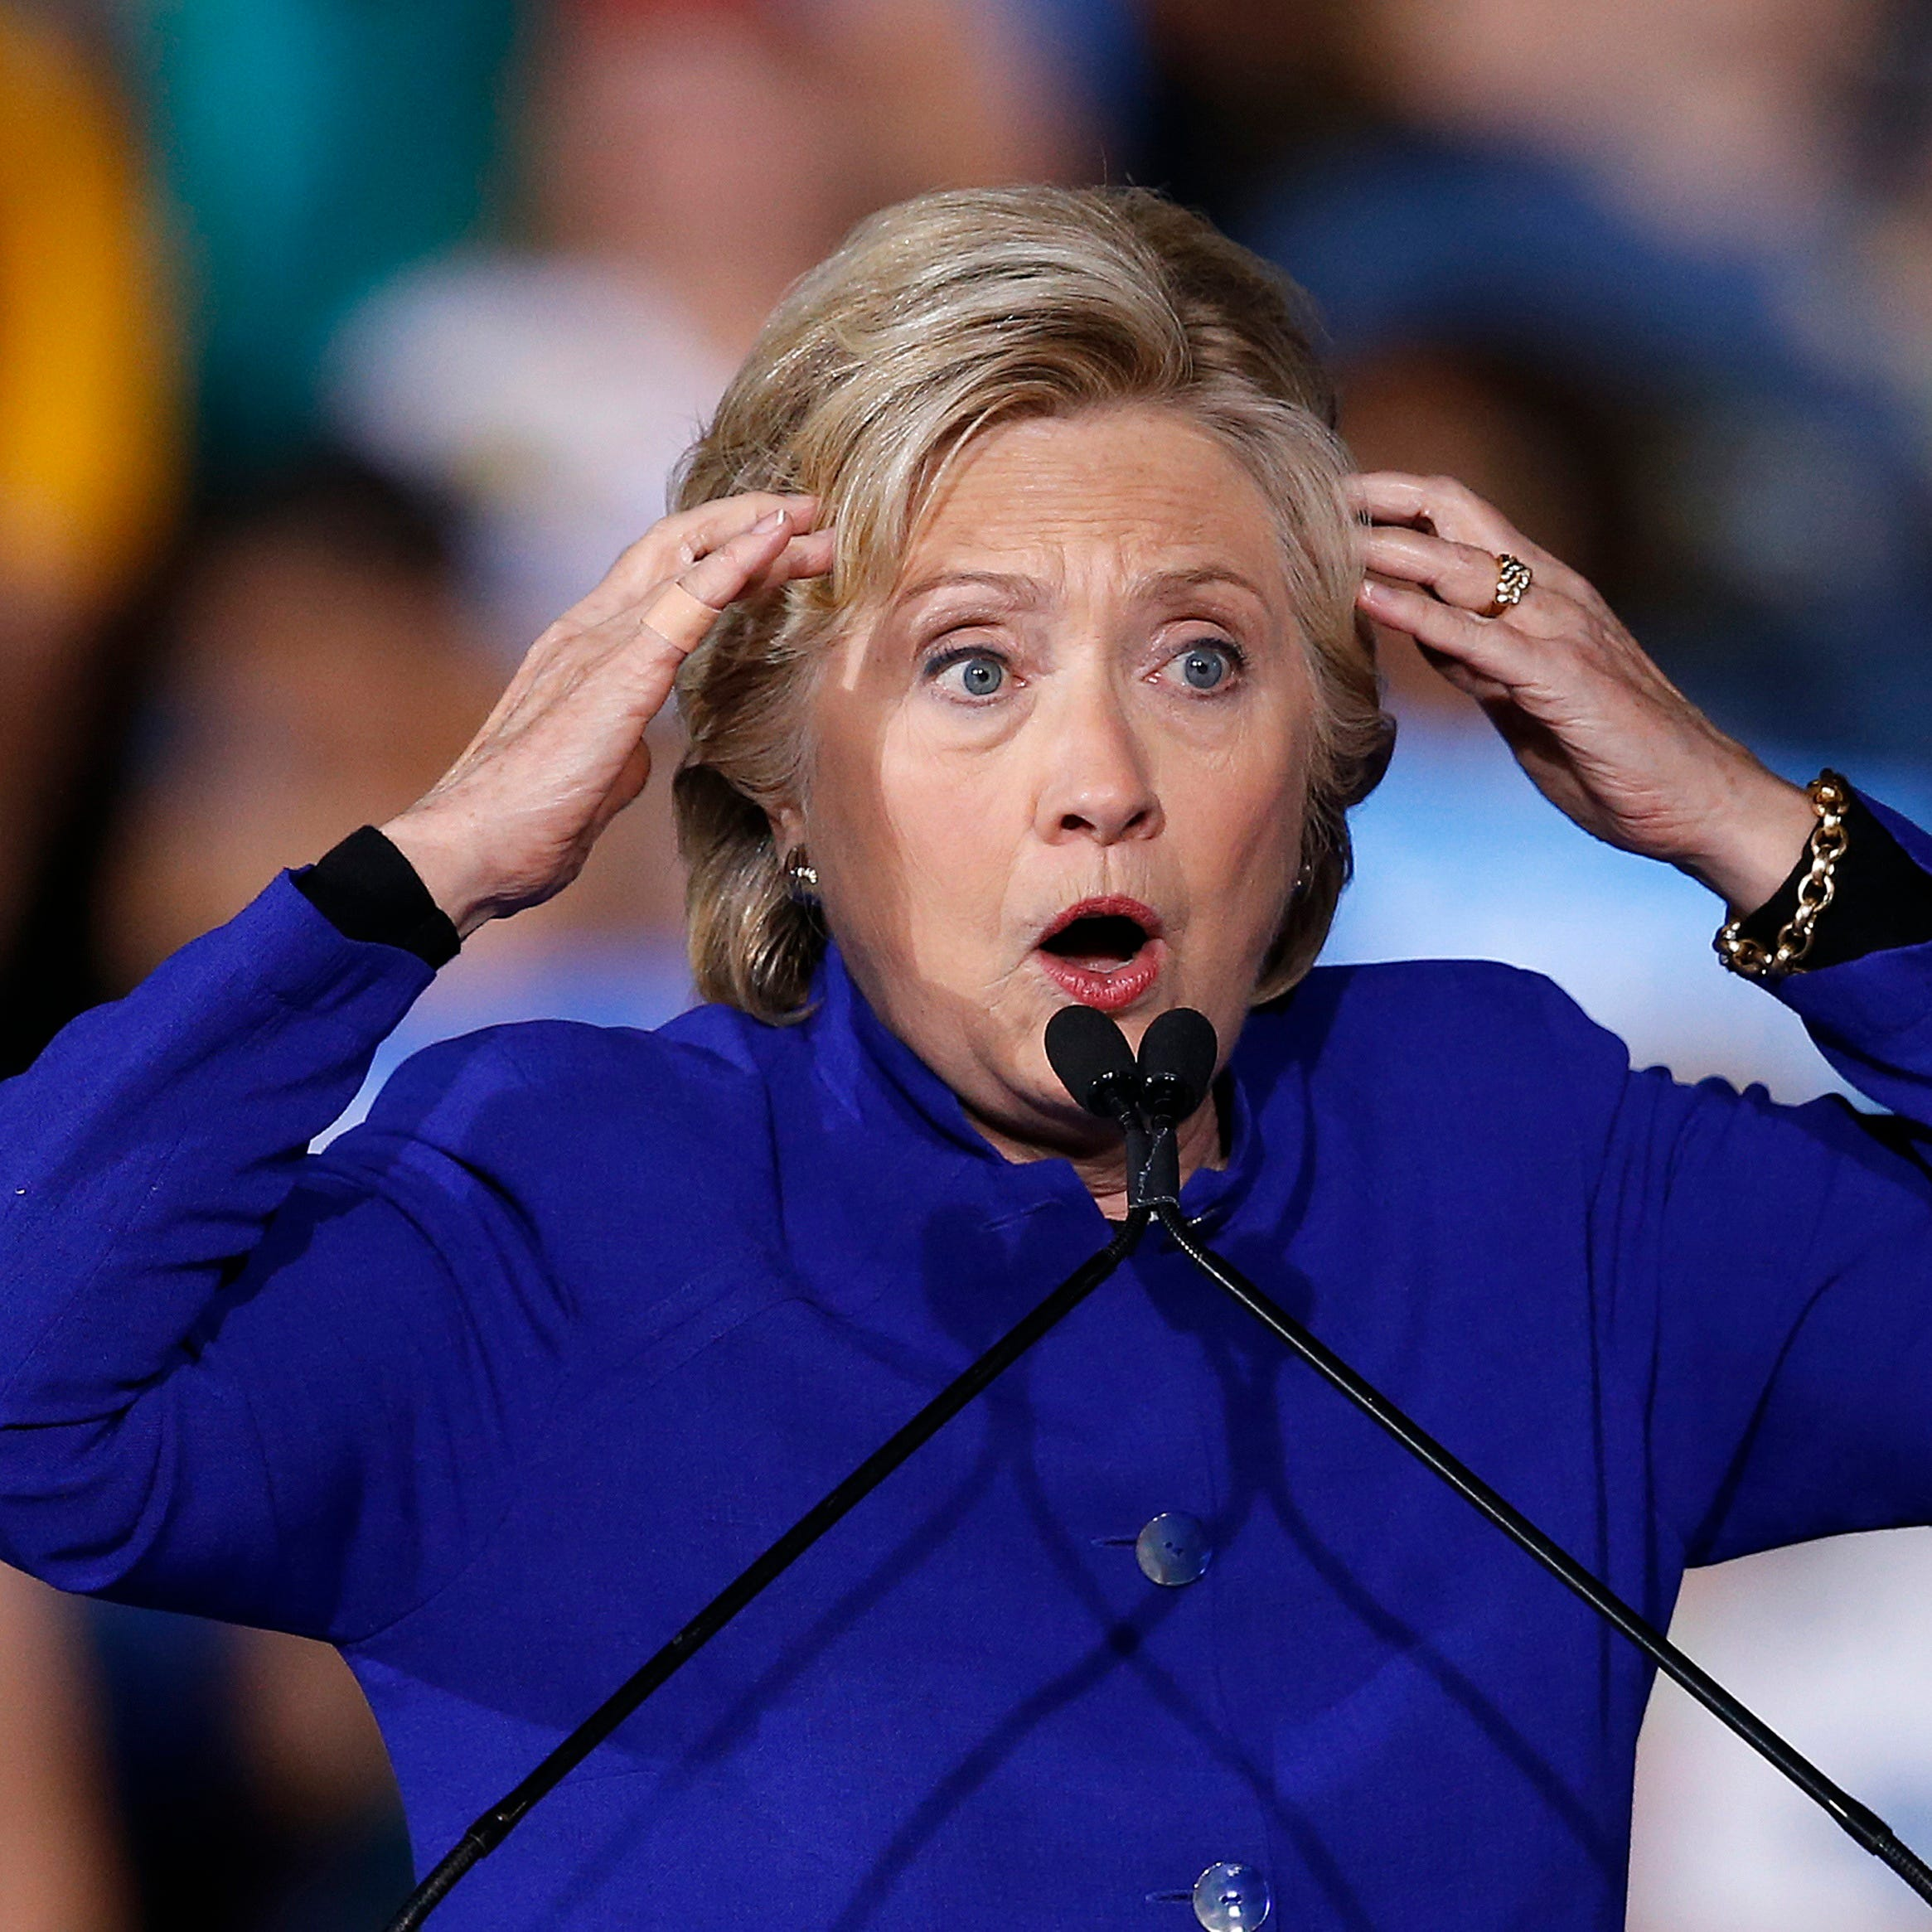 Then-Democratic presidential candidate Hillary Clinton gestures as she speaks at a campaign rally on Nov. 2, 2016, in Tempe, Ariz.